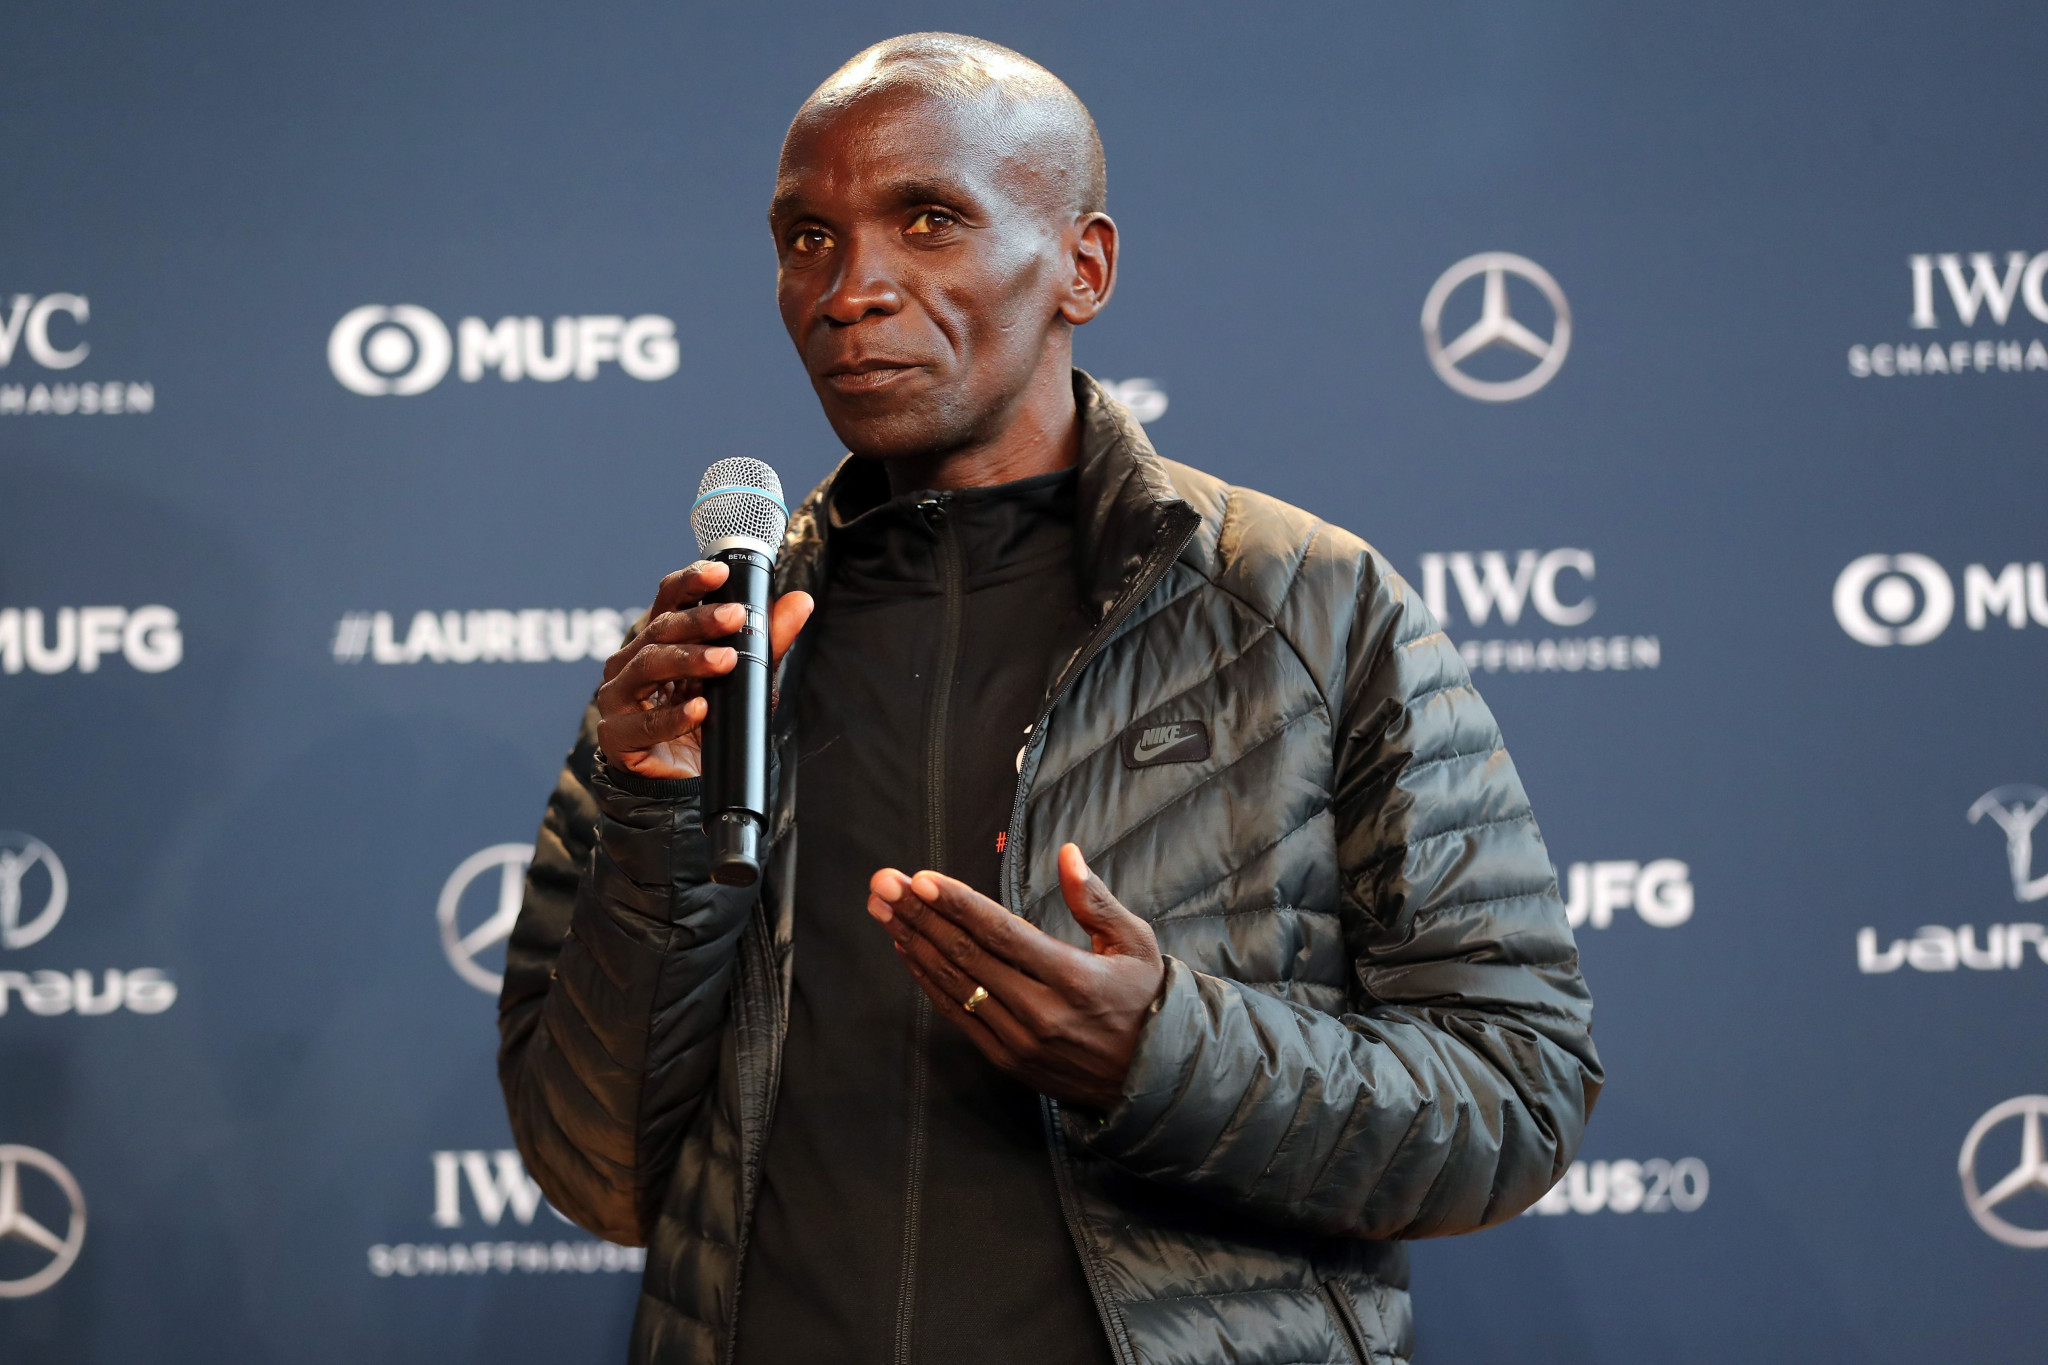 Marathon world record holder Kipchoge hopeful of competing at Tokyo 2020